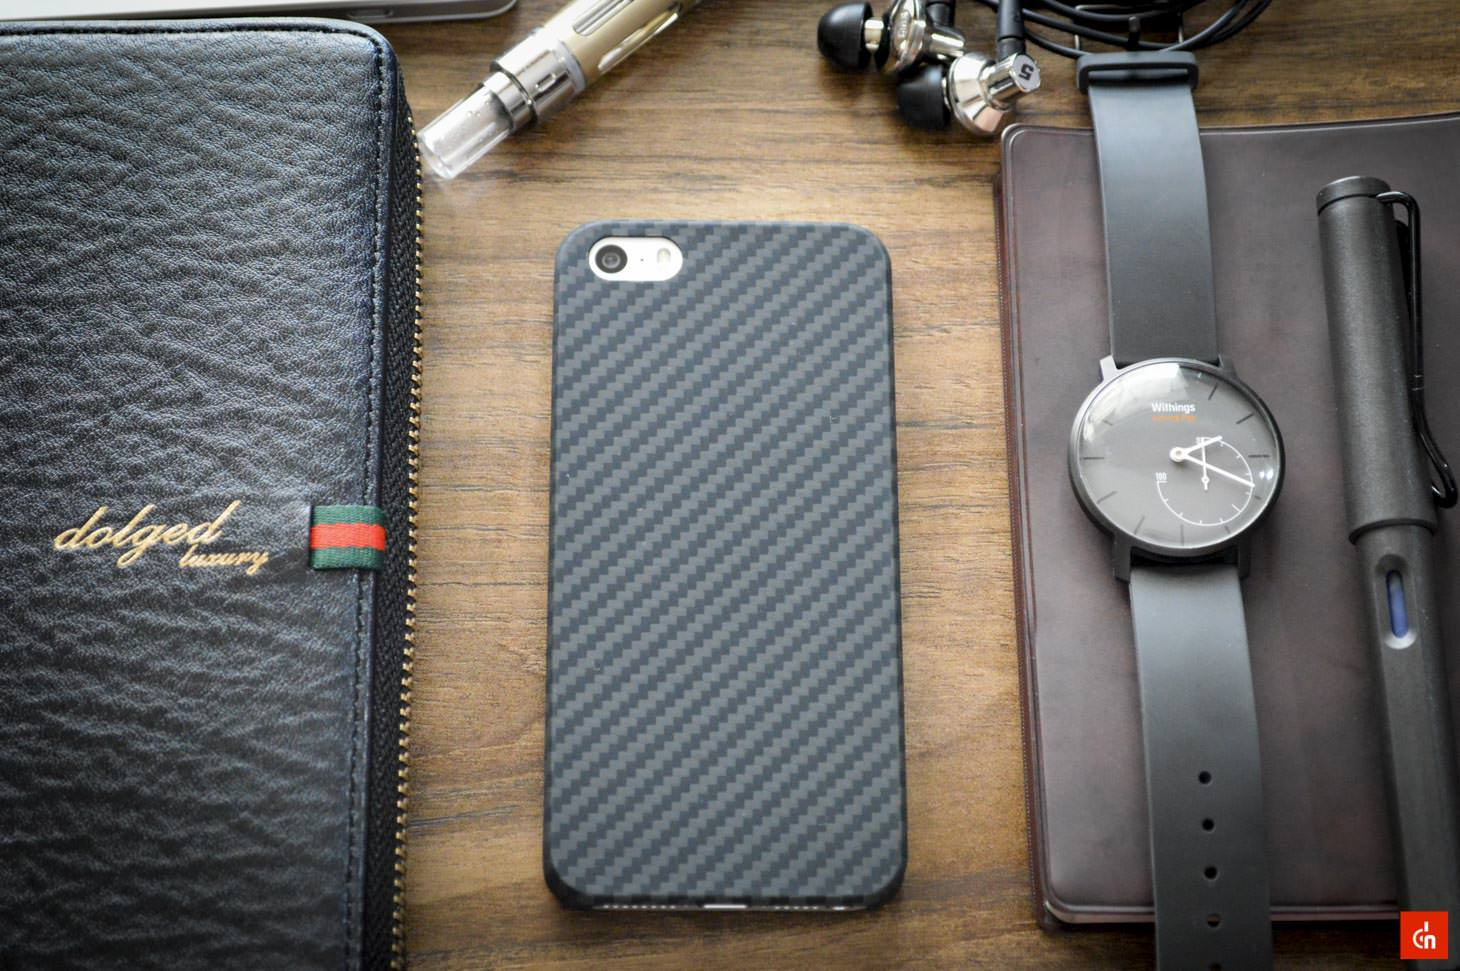 023_20160717_pitaka-carbon-iphonese-case